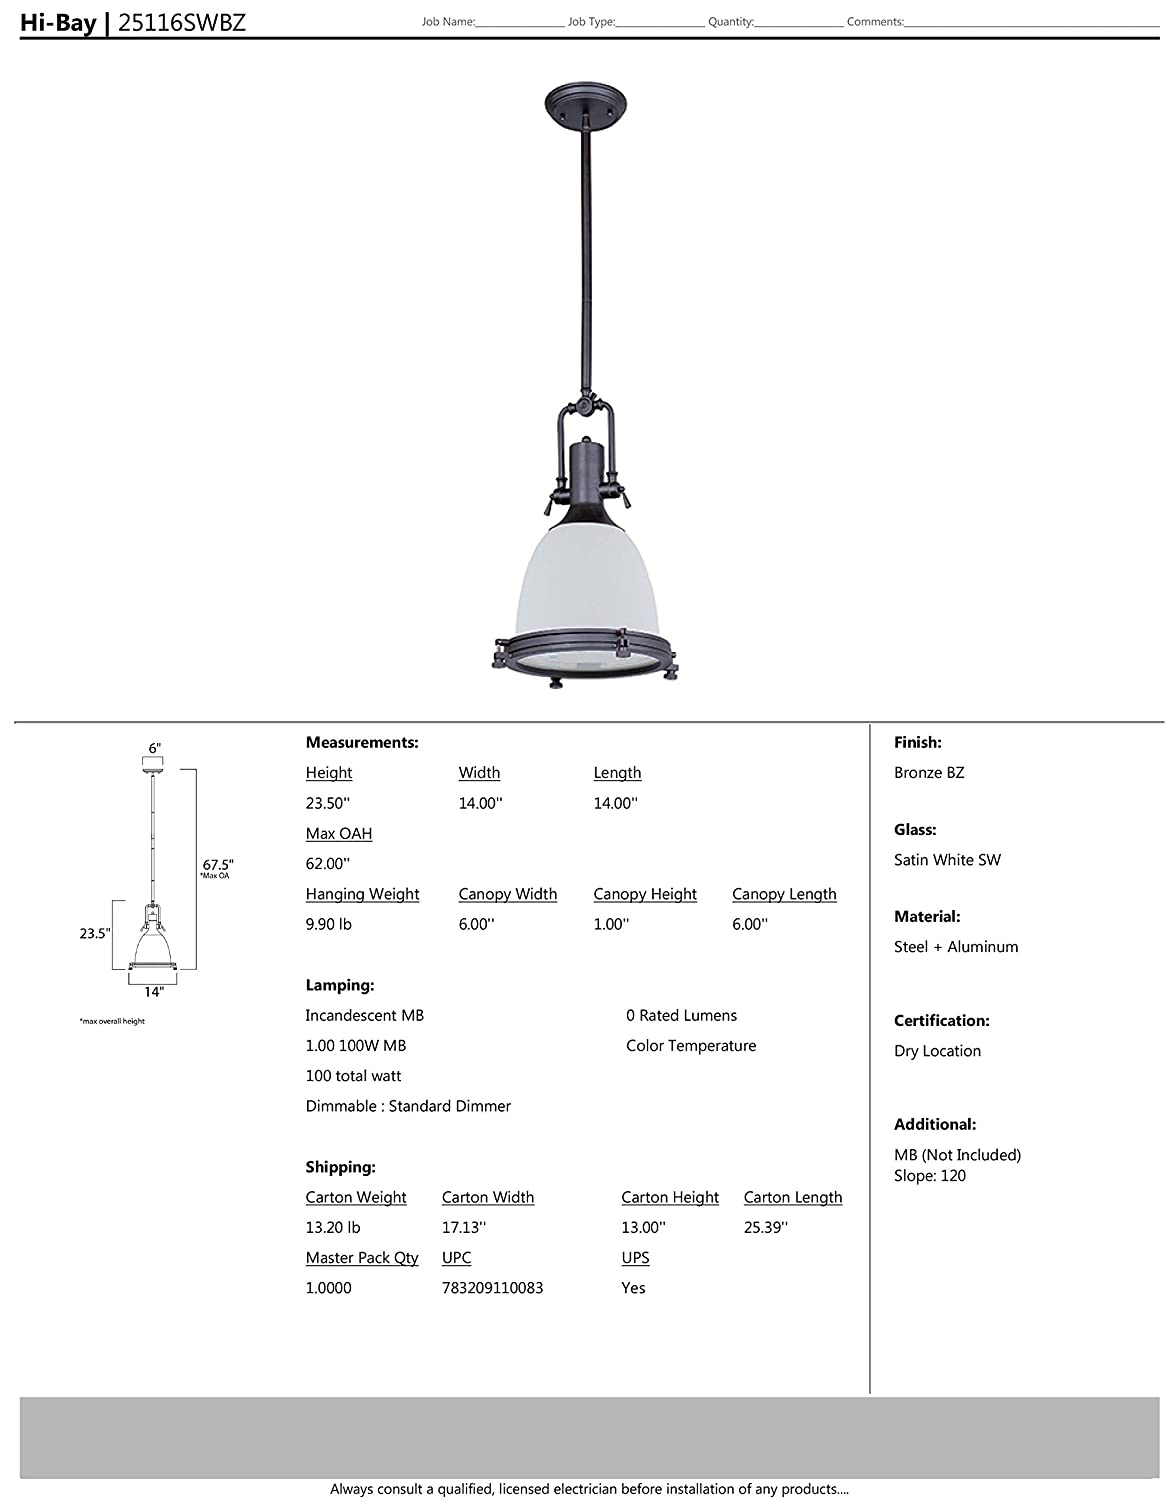 Dry Safety Rating Shade Material 587 Rated Lumens 10W Max. Standard Triac//Lutron or Leviton Dimmable MB Incandescent Incandescent Bulb Maxim 25116SWSN Hi-Bay 1-Light Pendant 2700K Color Temp Satin Nickel Finish Satin White Glass